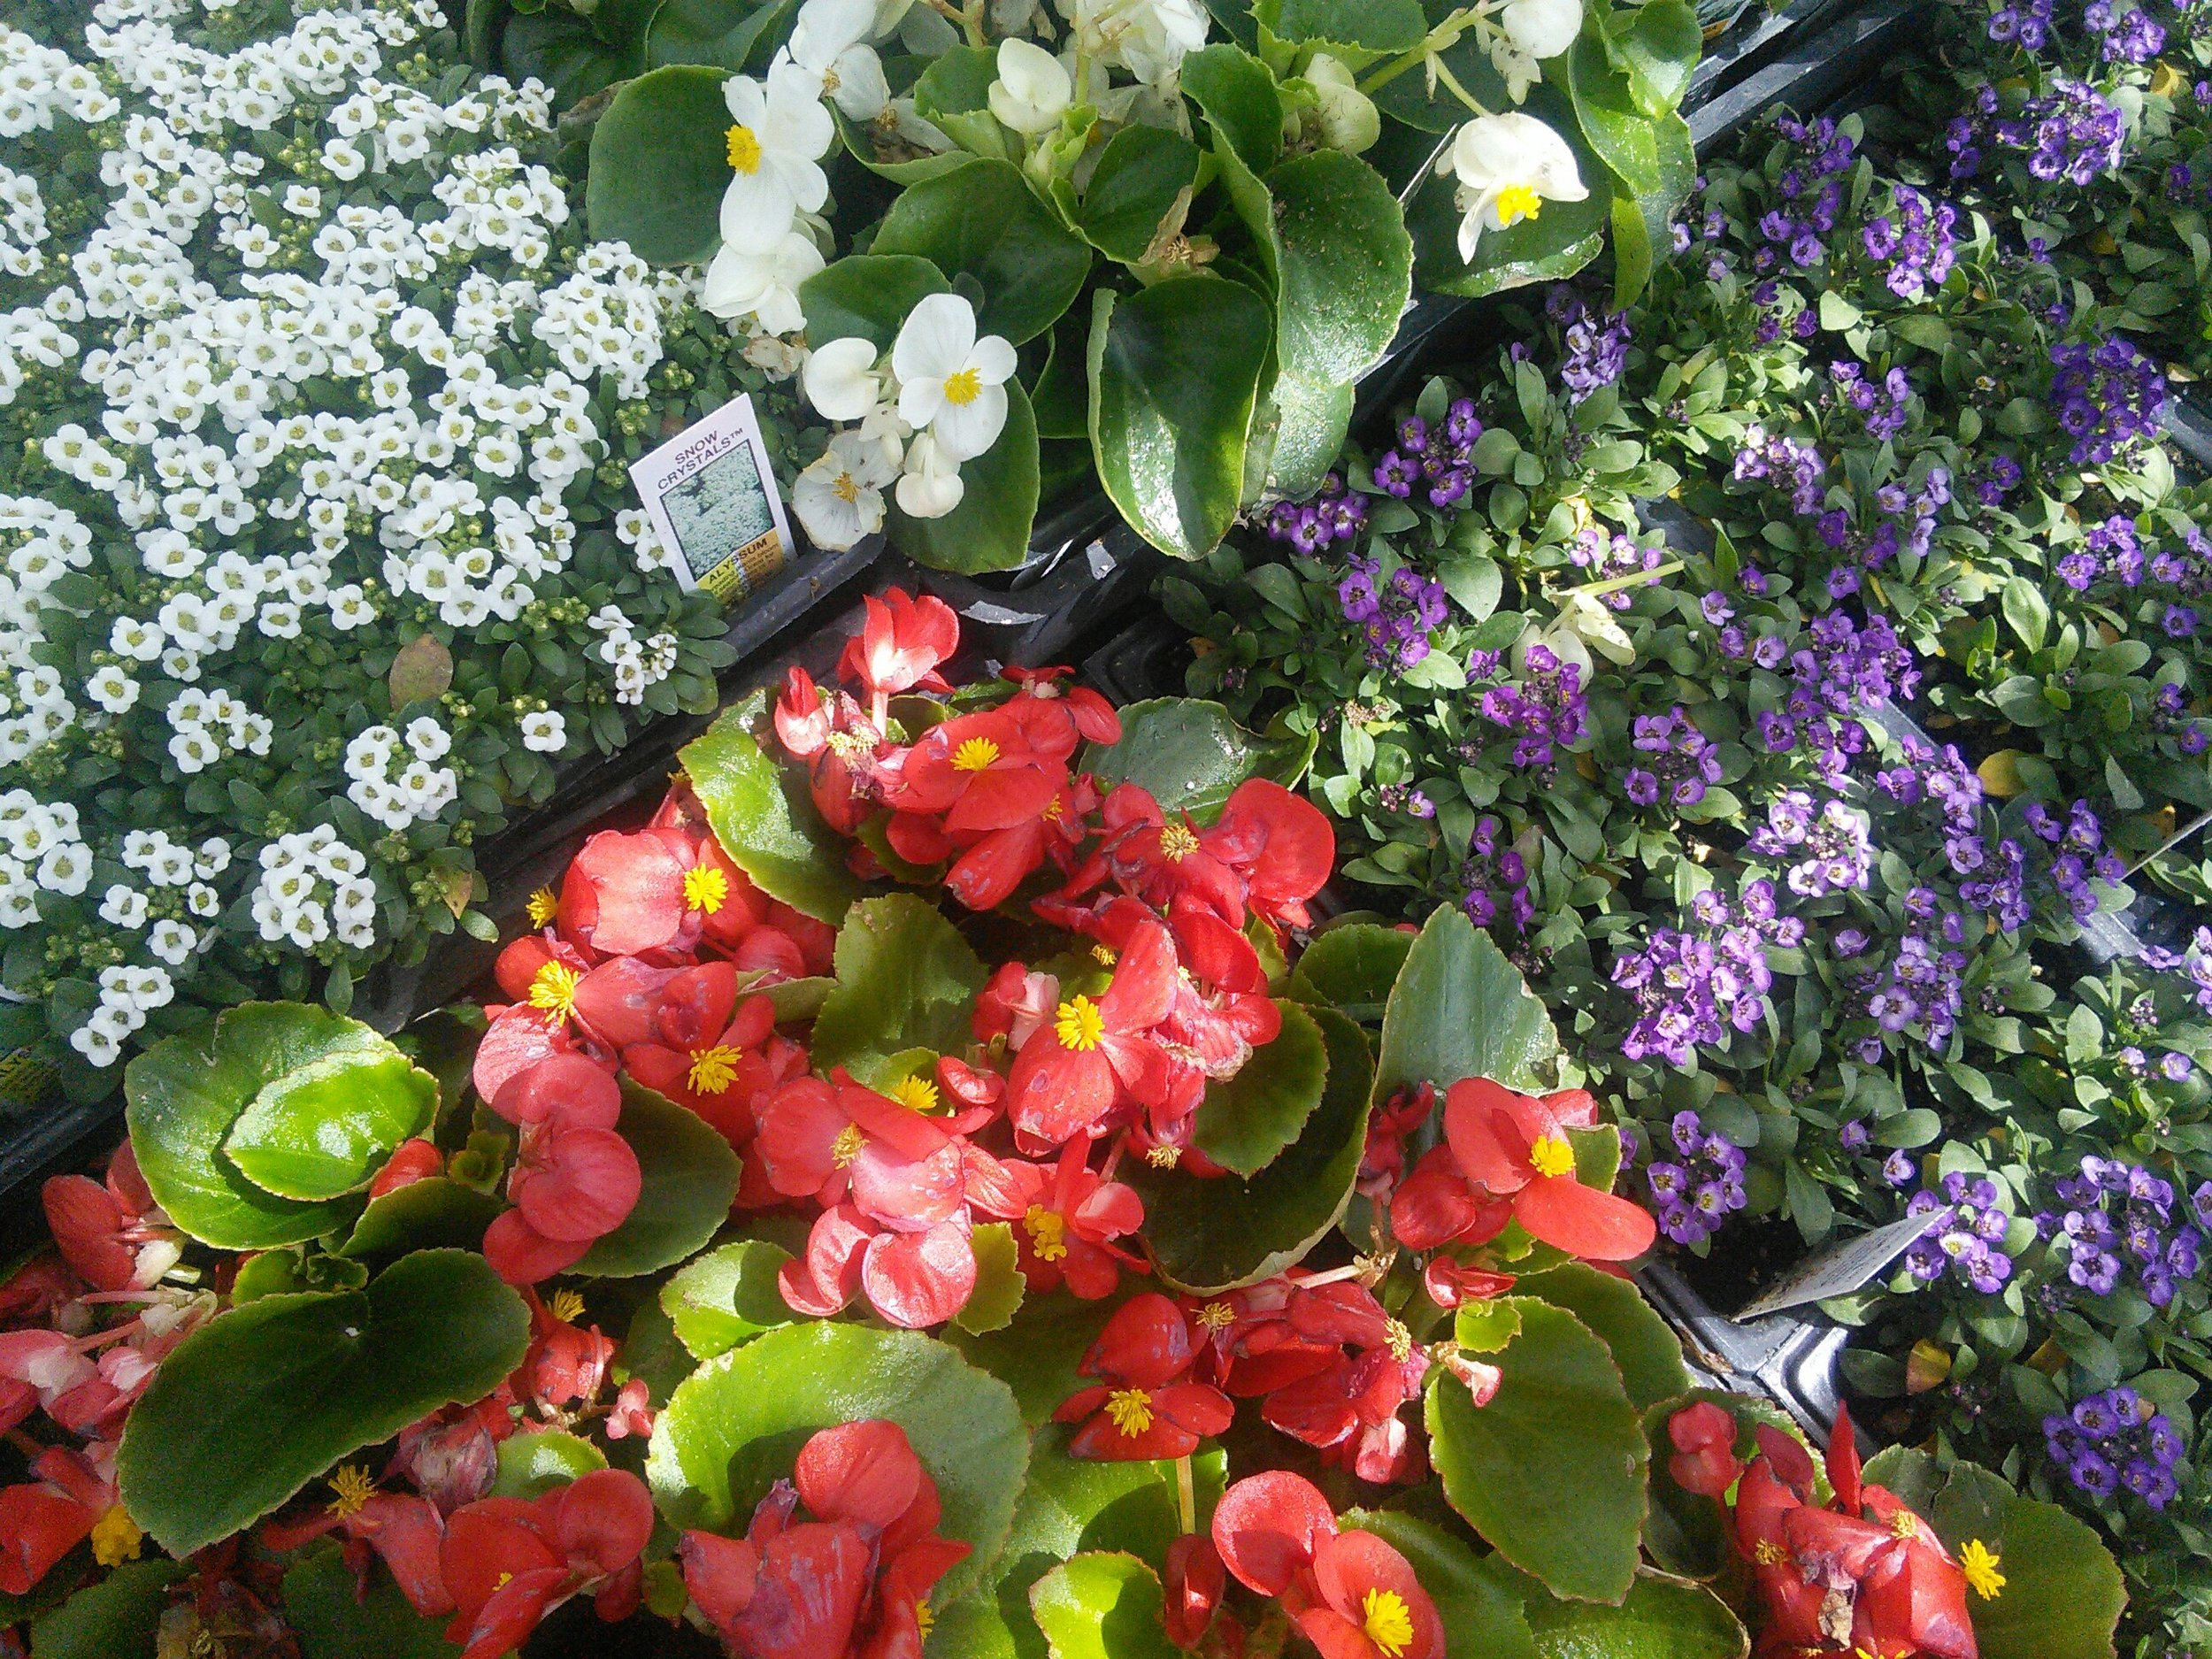 Begonia and Alyssum